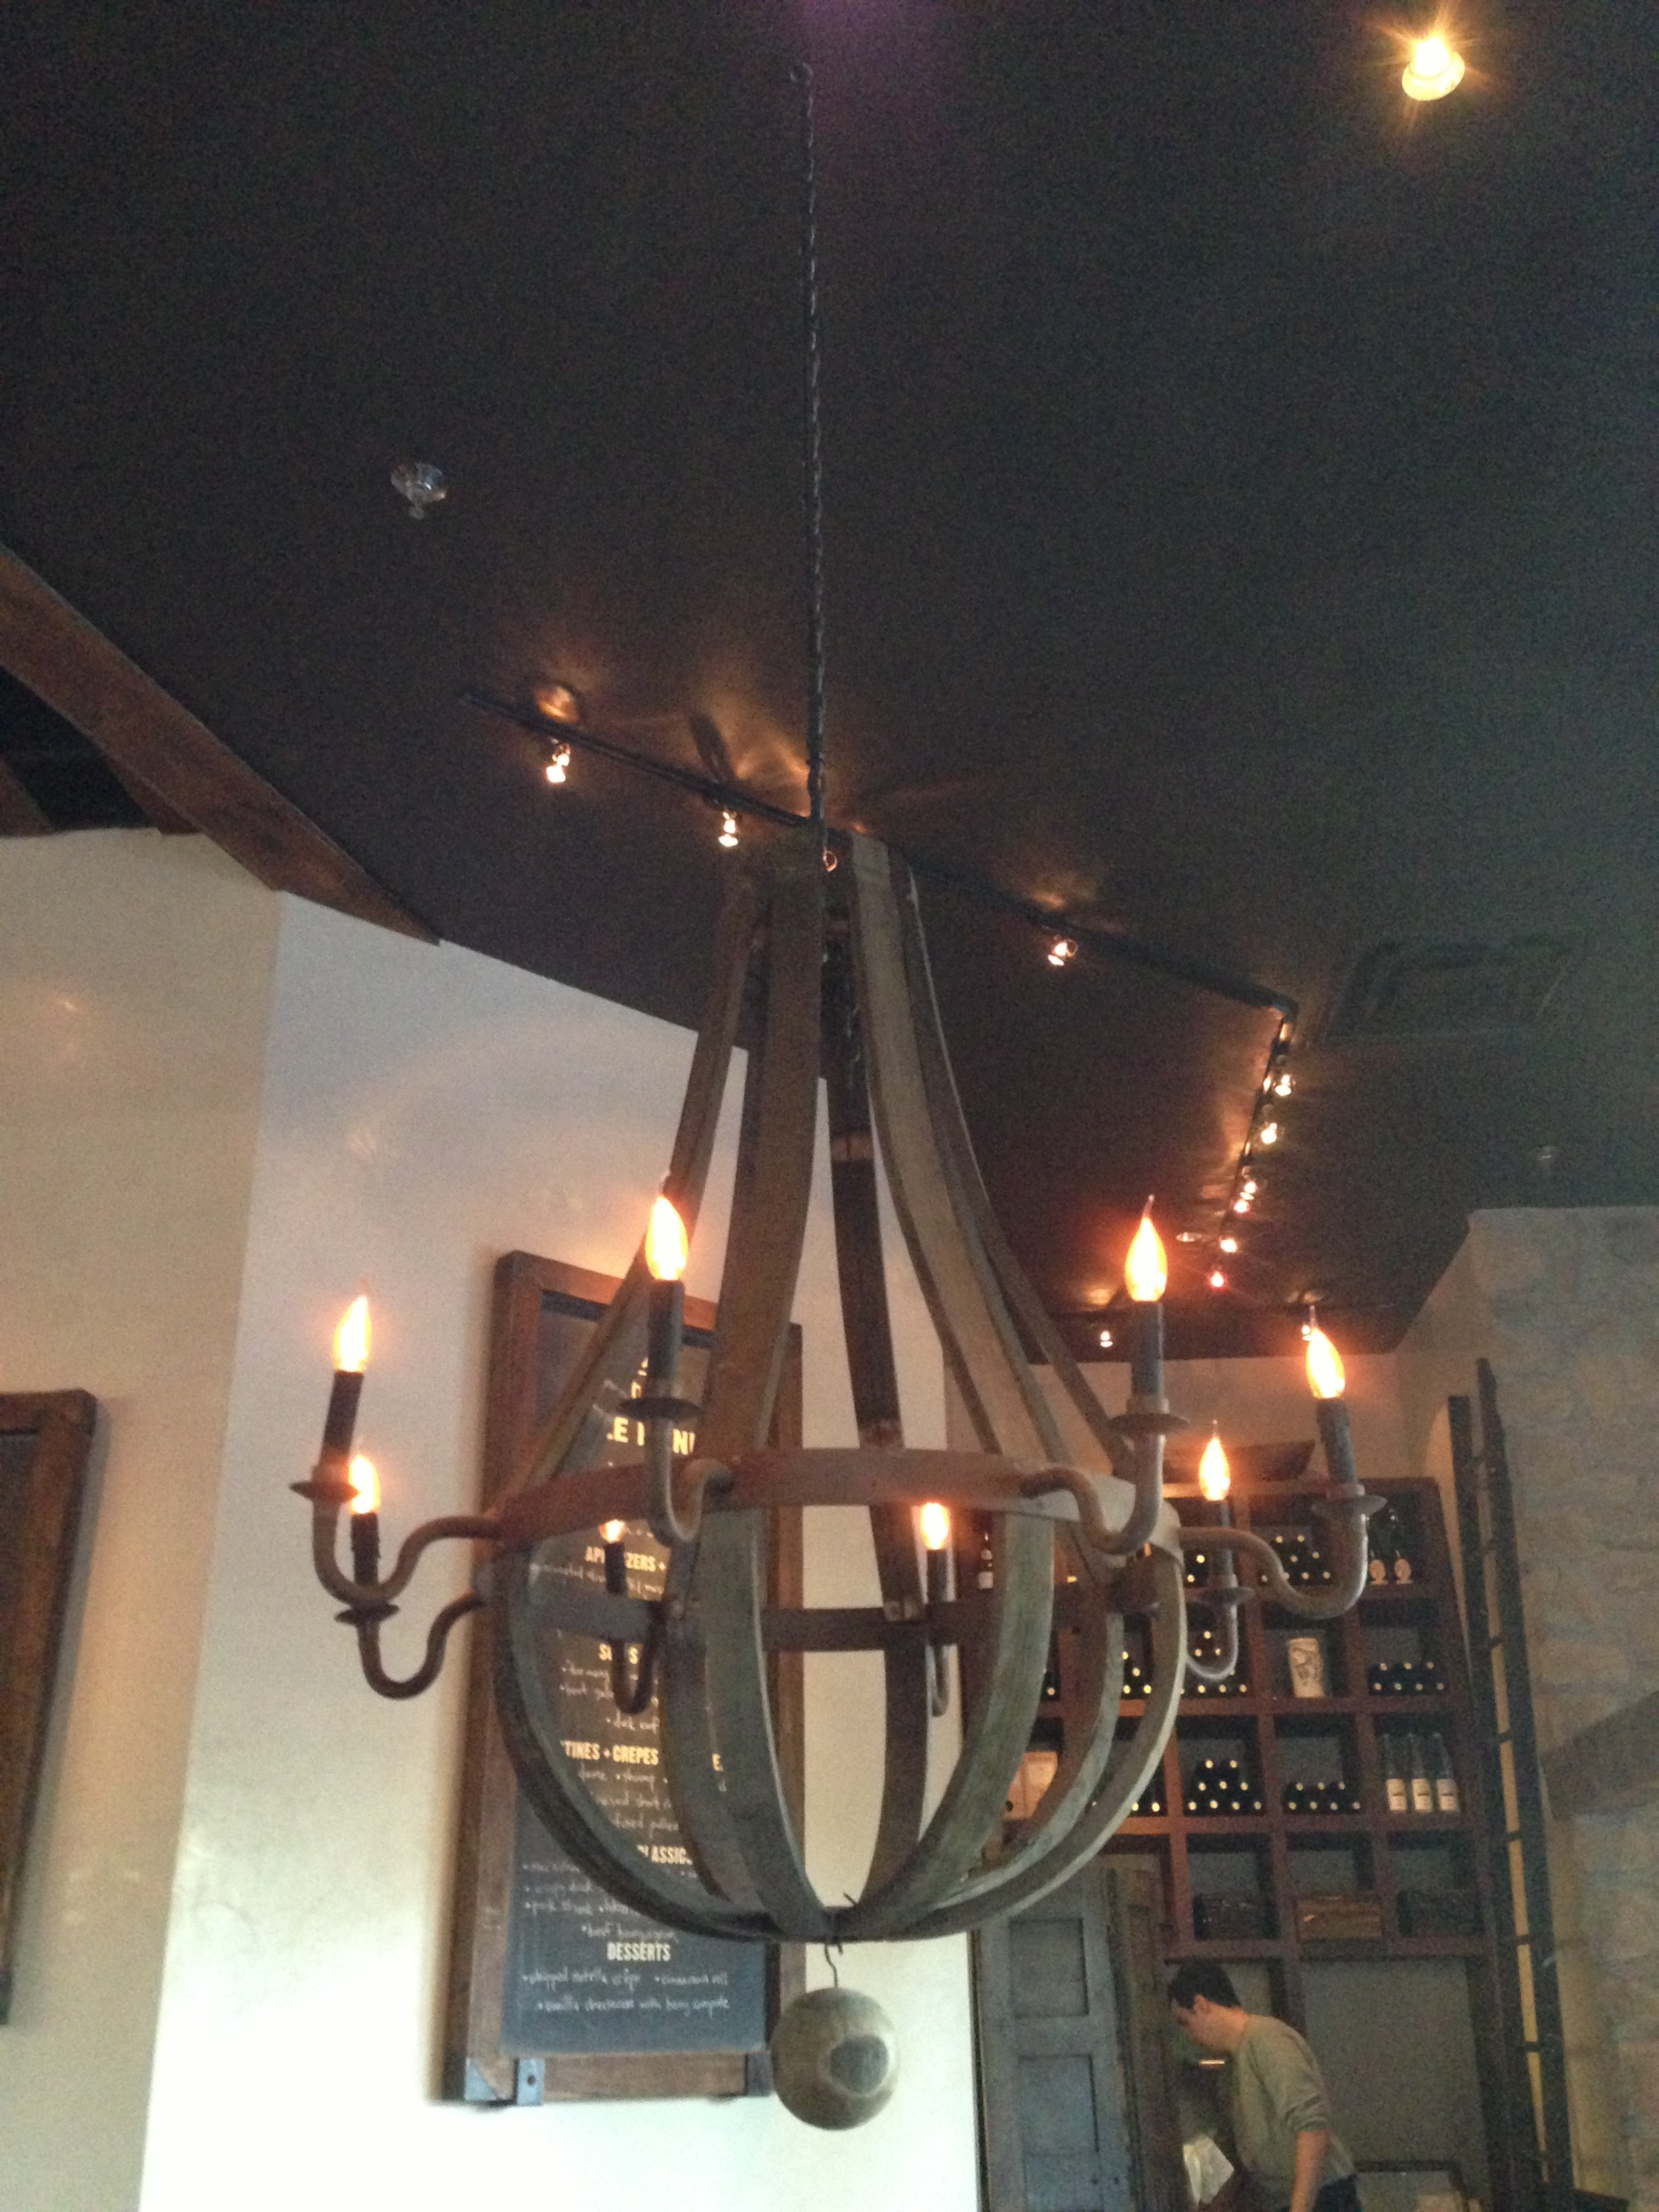 Recycled wine barrel chandeliers i heart pgh recycled wine barrel chandeliers arubaitofo Choice Image